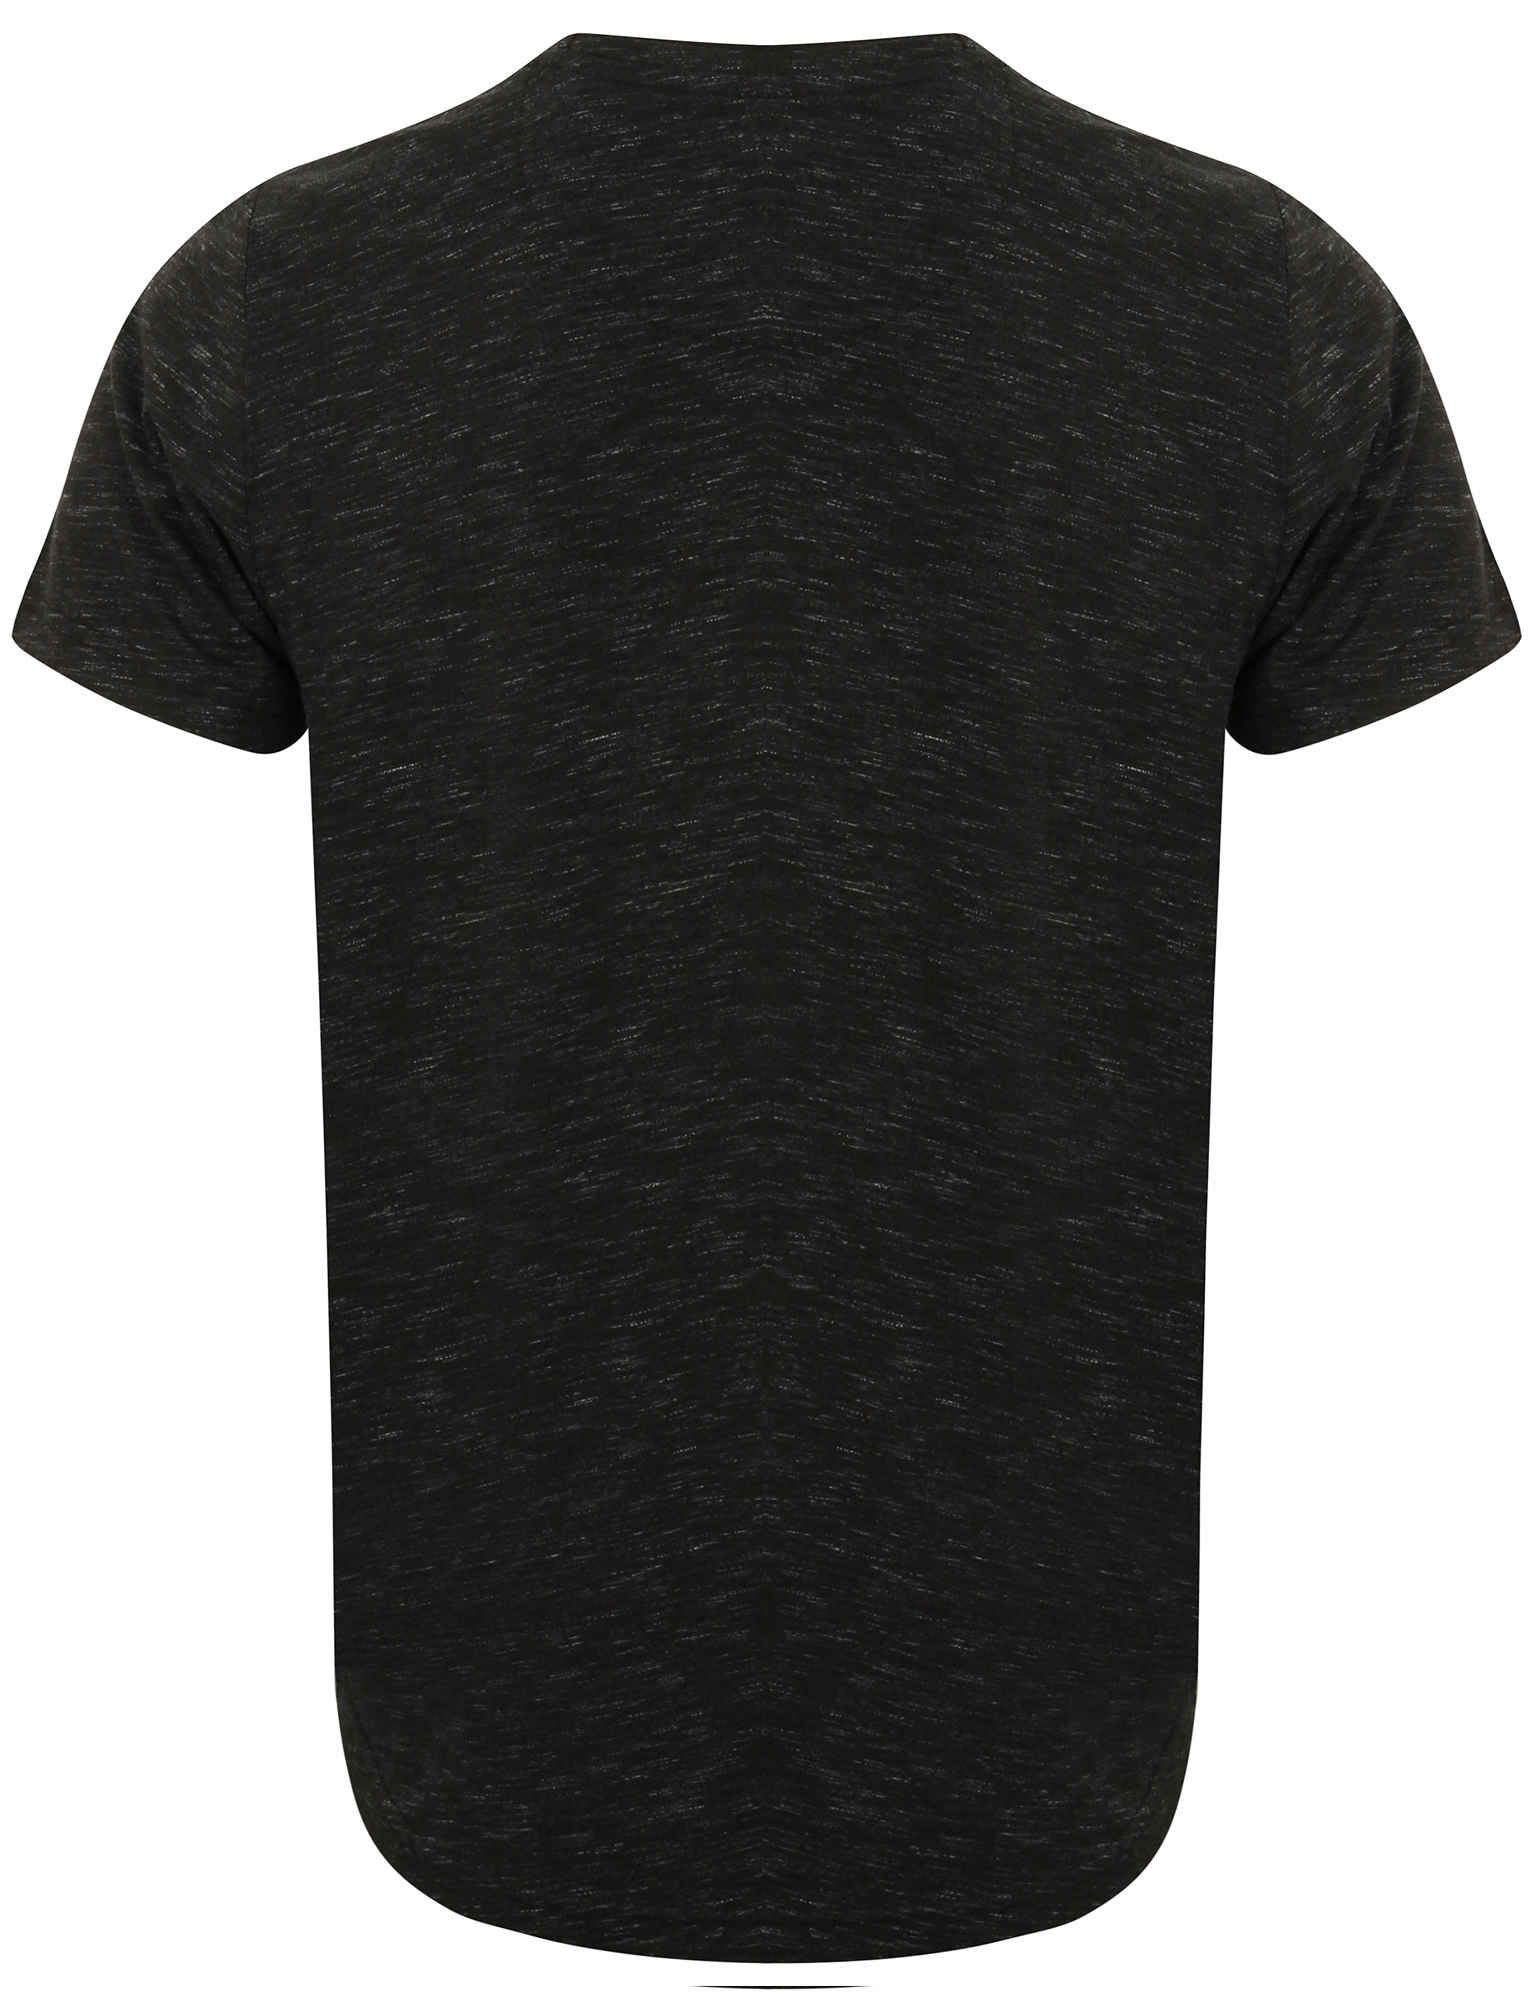 New-Mens-Dissident-Carbon-Summer-Graphic-Print-Crew-Neck-T-Shirt-Size-S-XXL